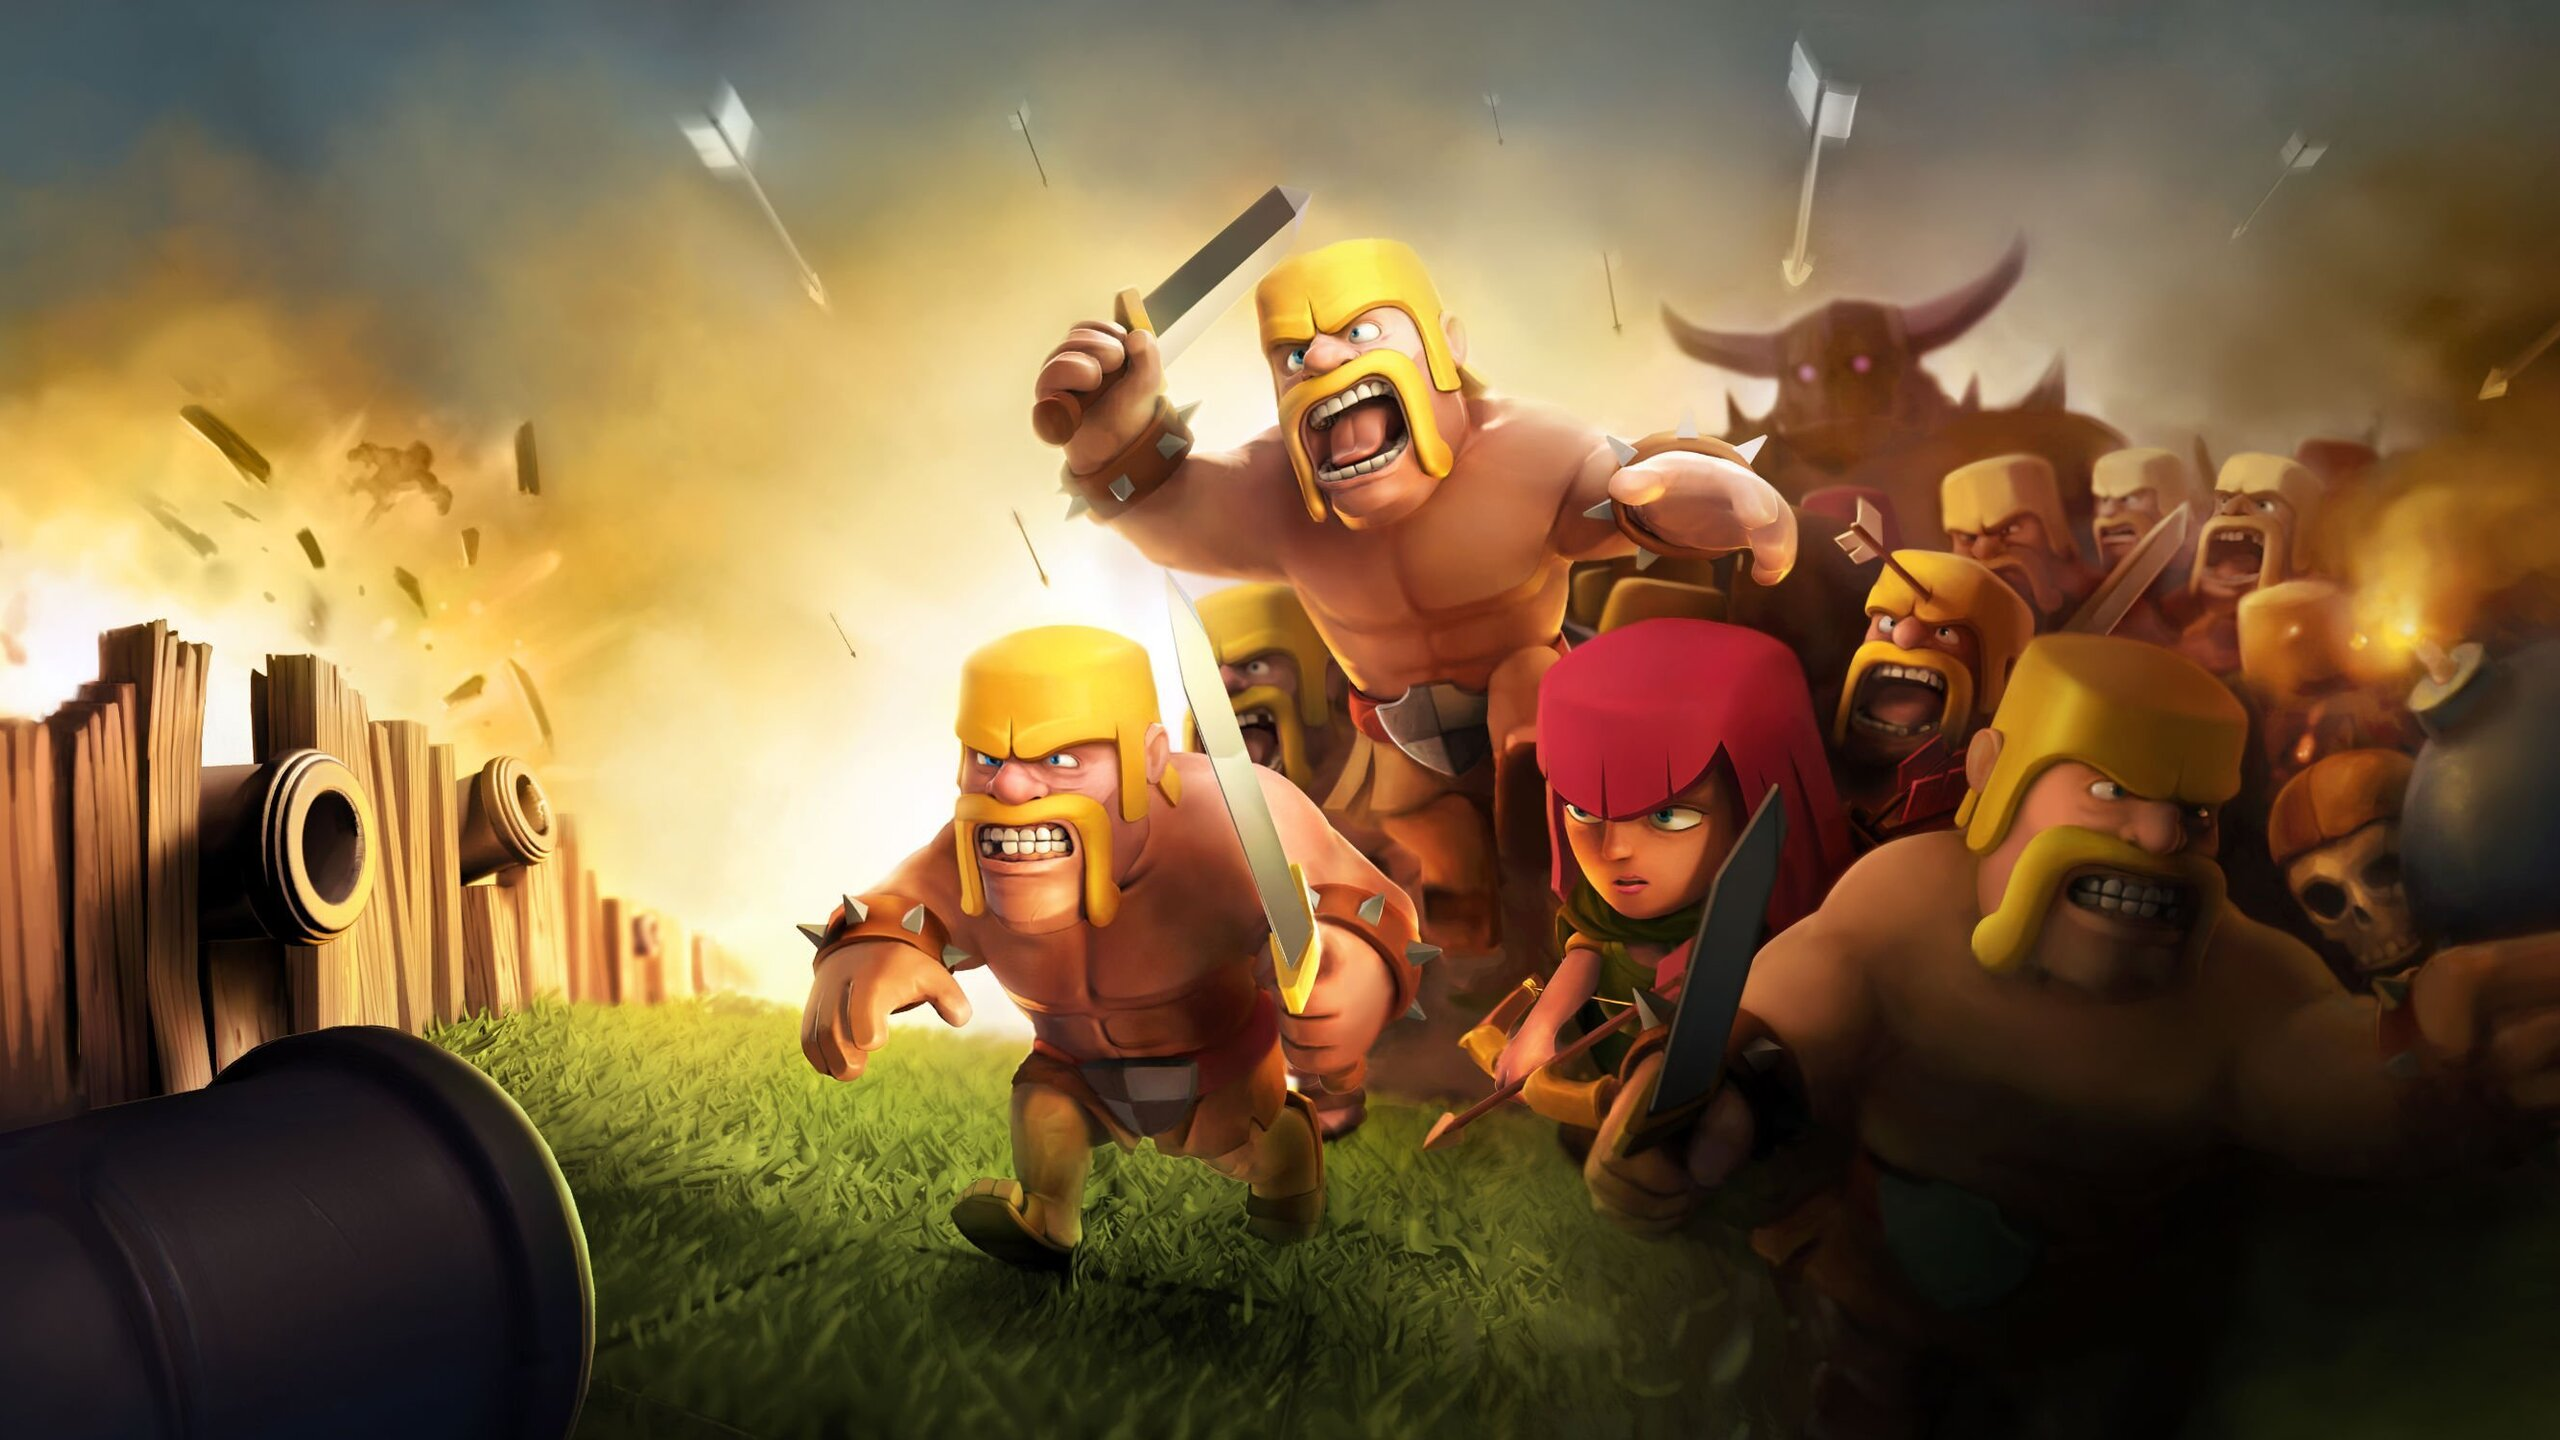 Download Clash Clans Wallpaper Hd For Pc